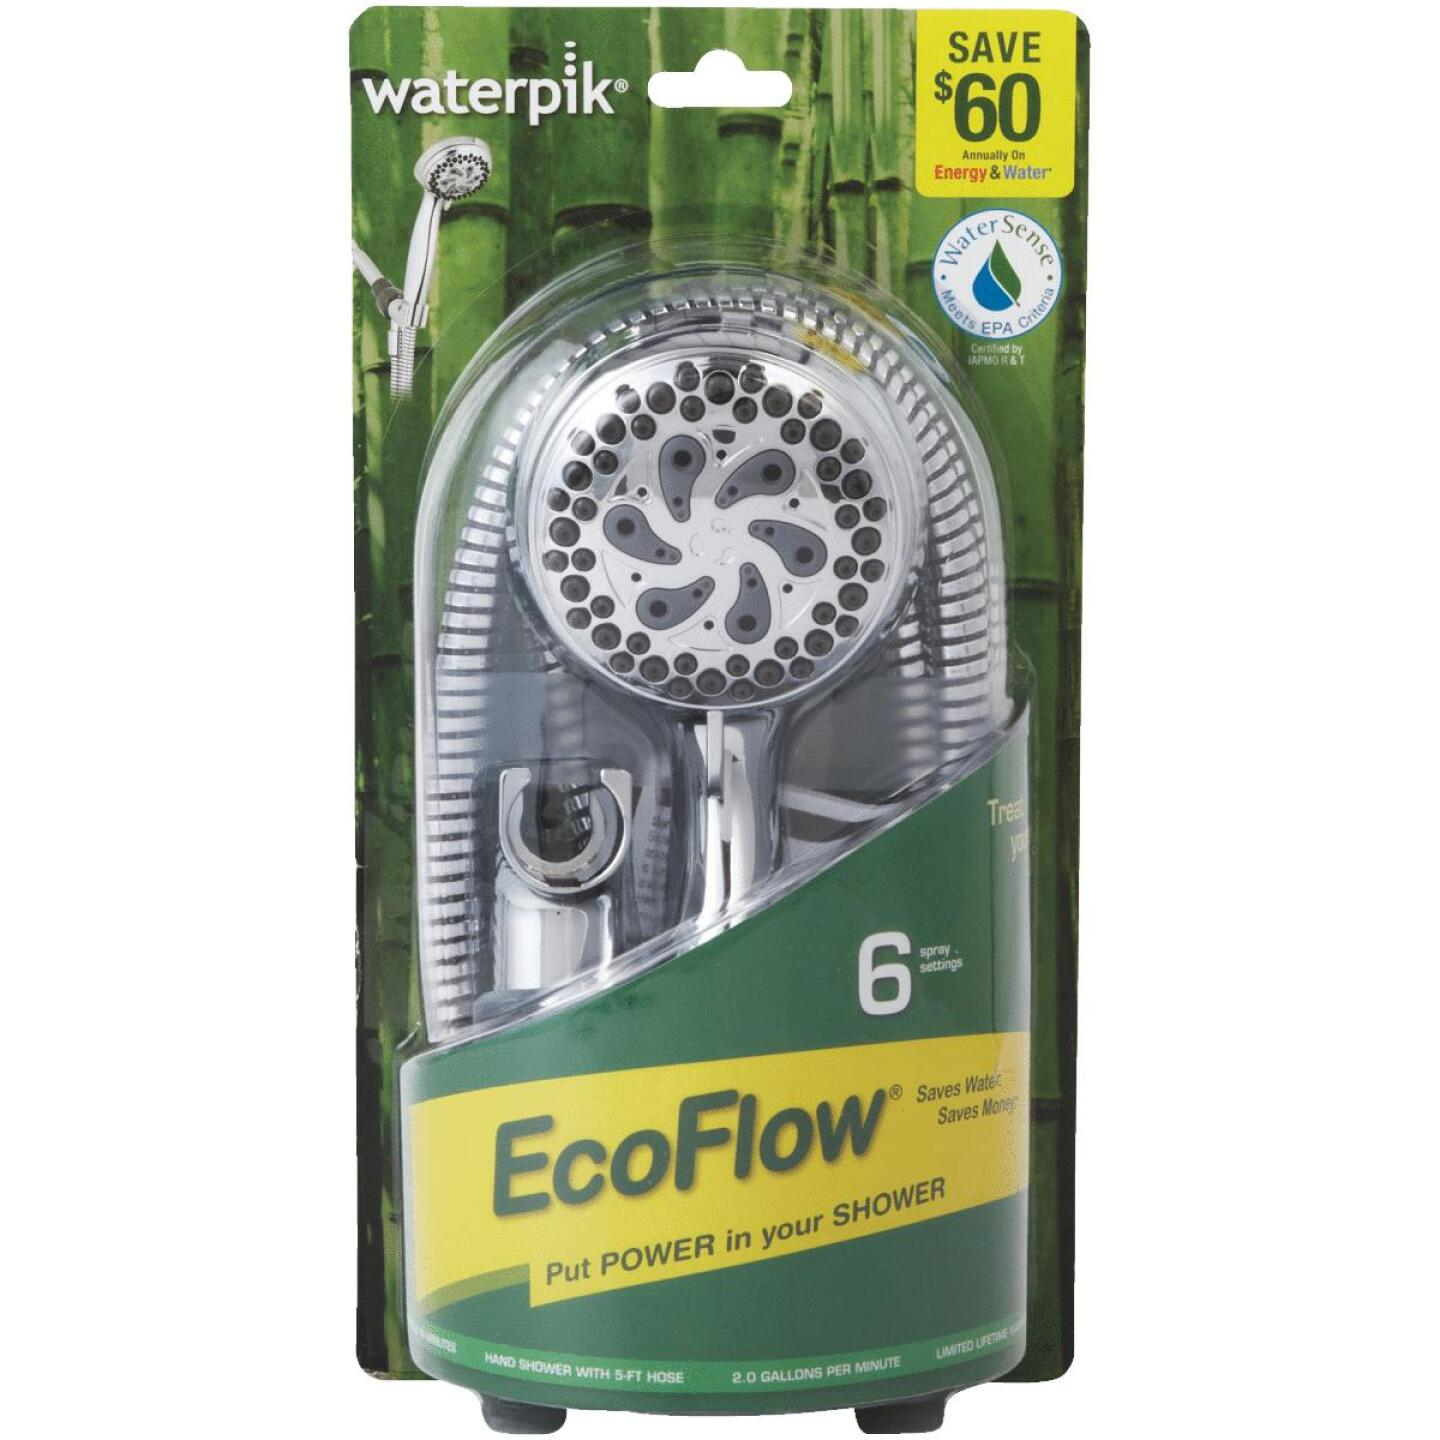 Waterpik EcoFlow 6-Spray 1.8 GPM Handheld Shower, Chrome Image 2